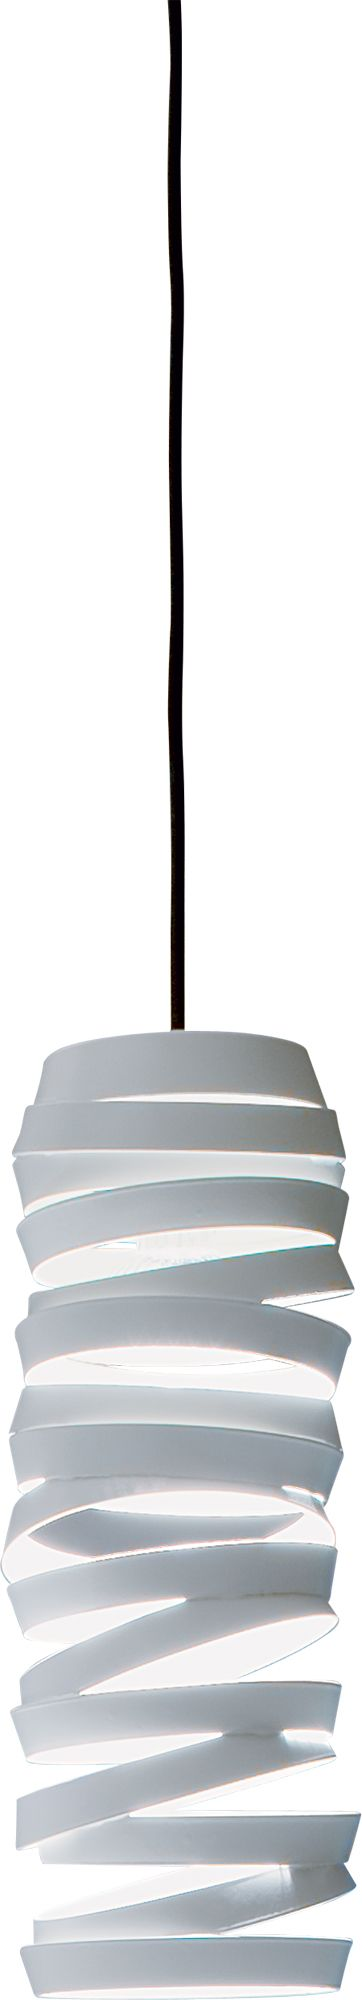 Amourette Pendant by Studio Italia Design on ECC